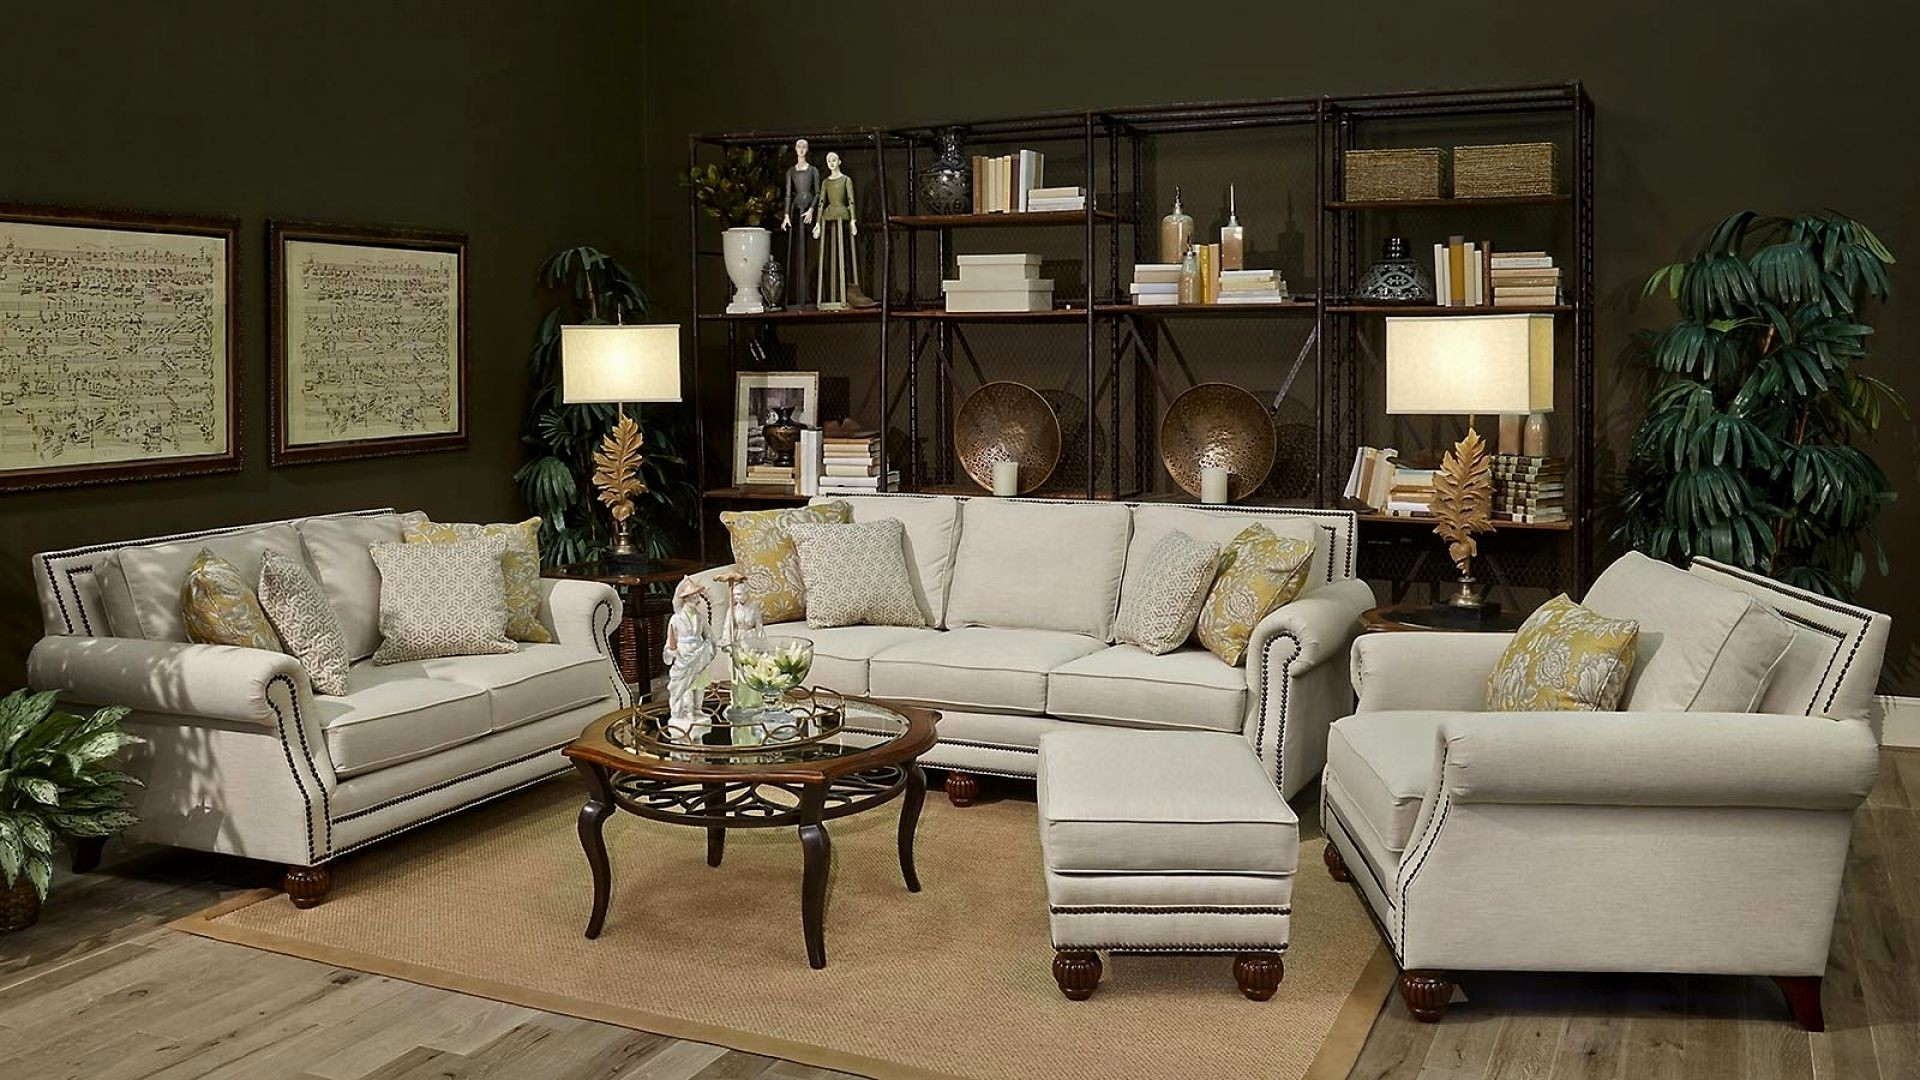 Famous Sectional Sofas In Houston Tx With The Dump In Houston Sectional Sofas Houston Tx Sectional Sofas San (View 4 of 15)